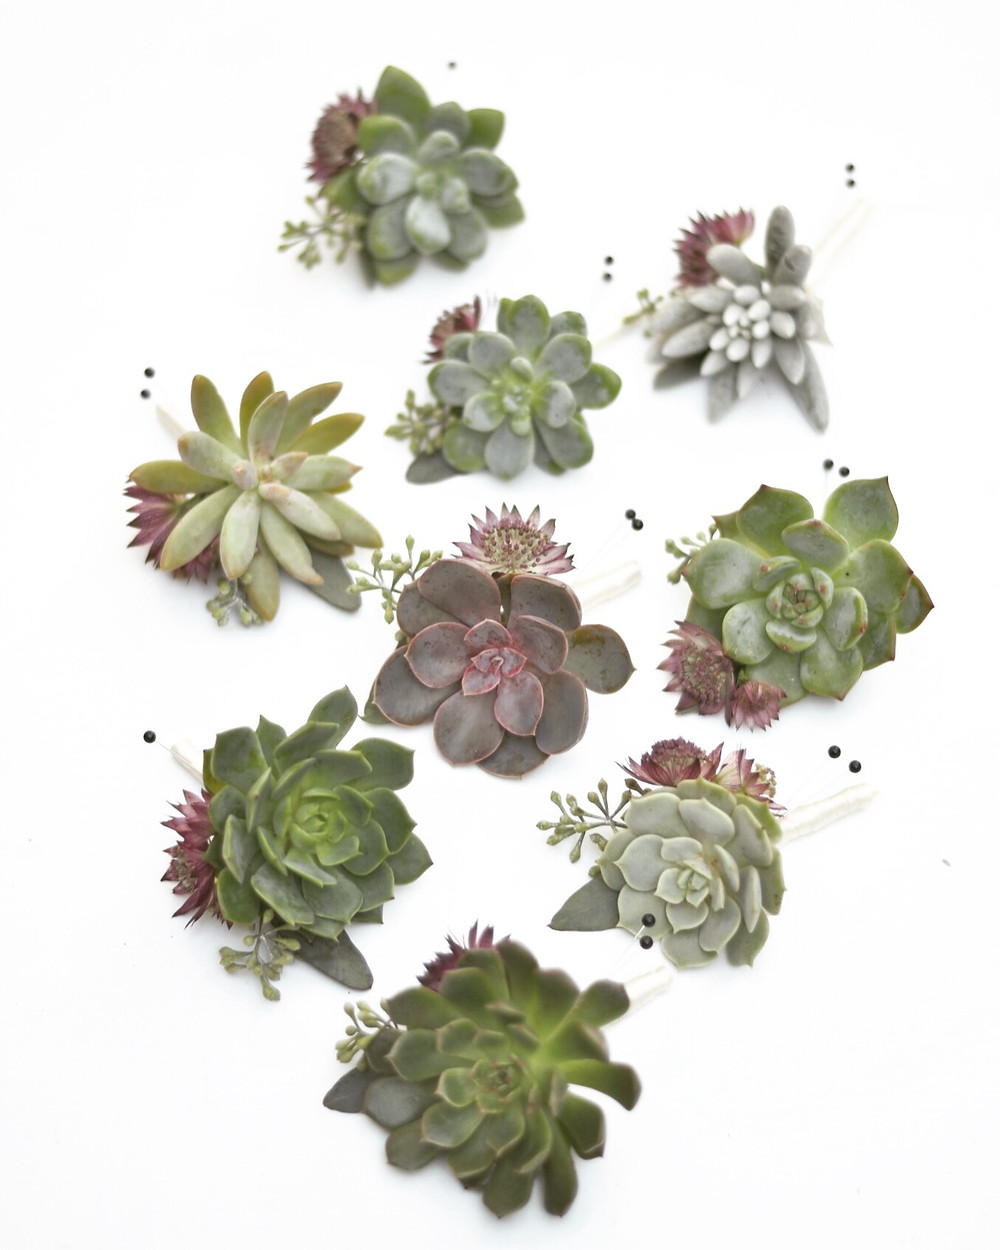 Succulent boutonnieres with Astrantias and seeded Eucalyptus